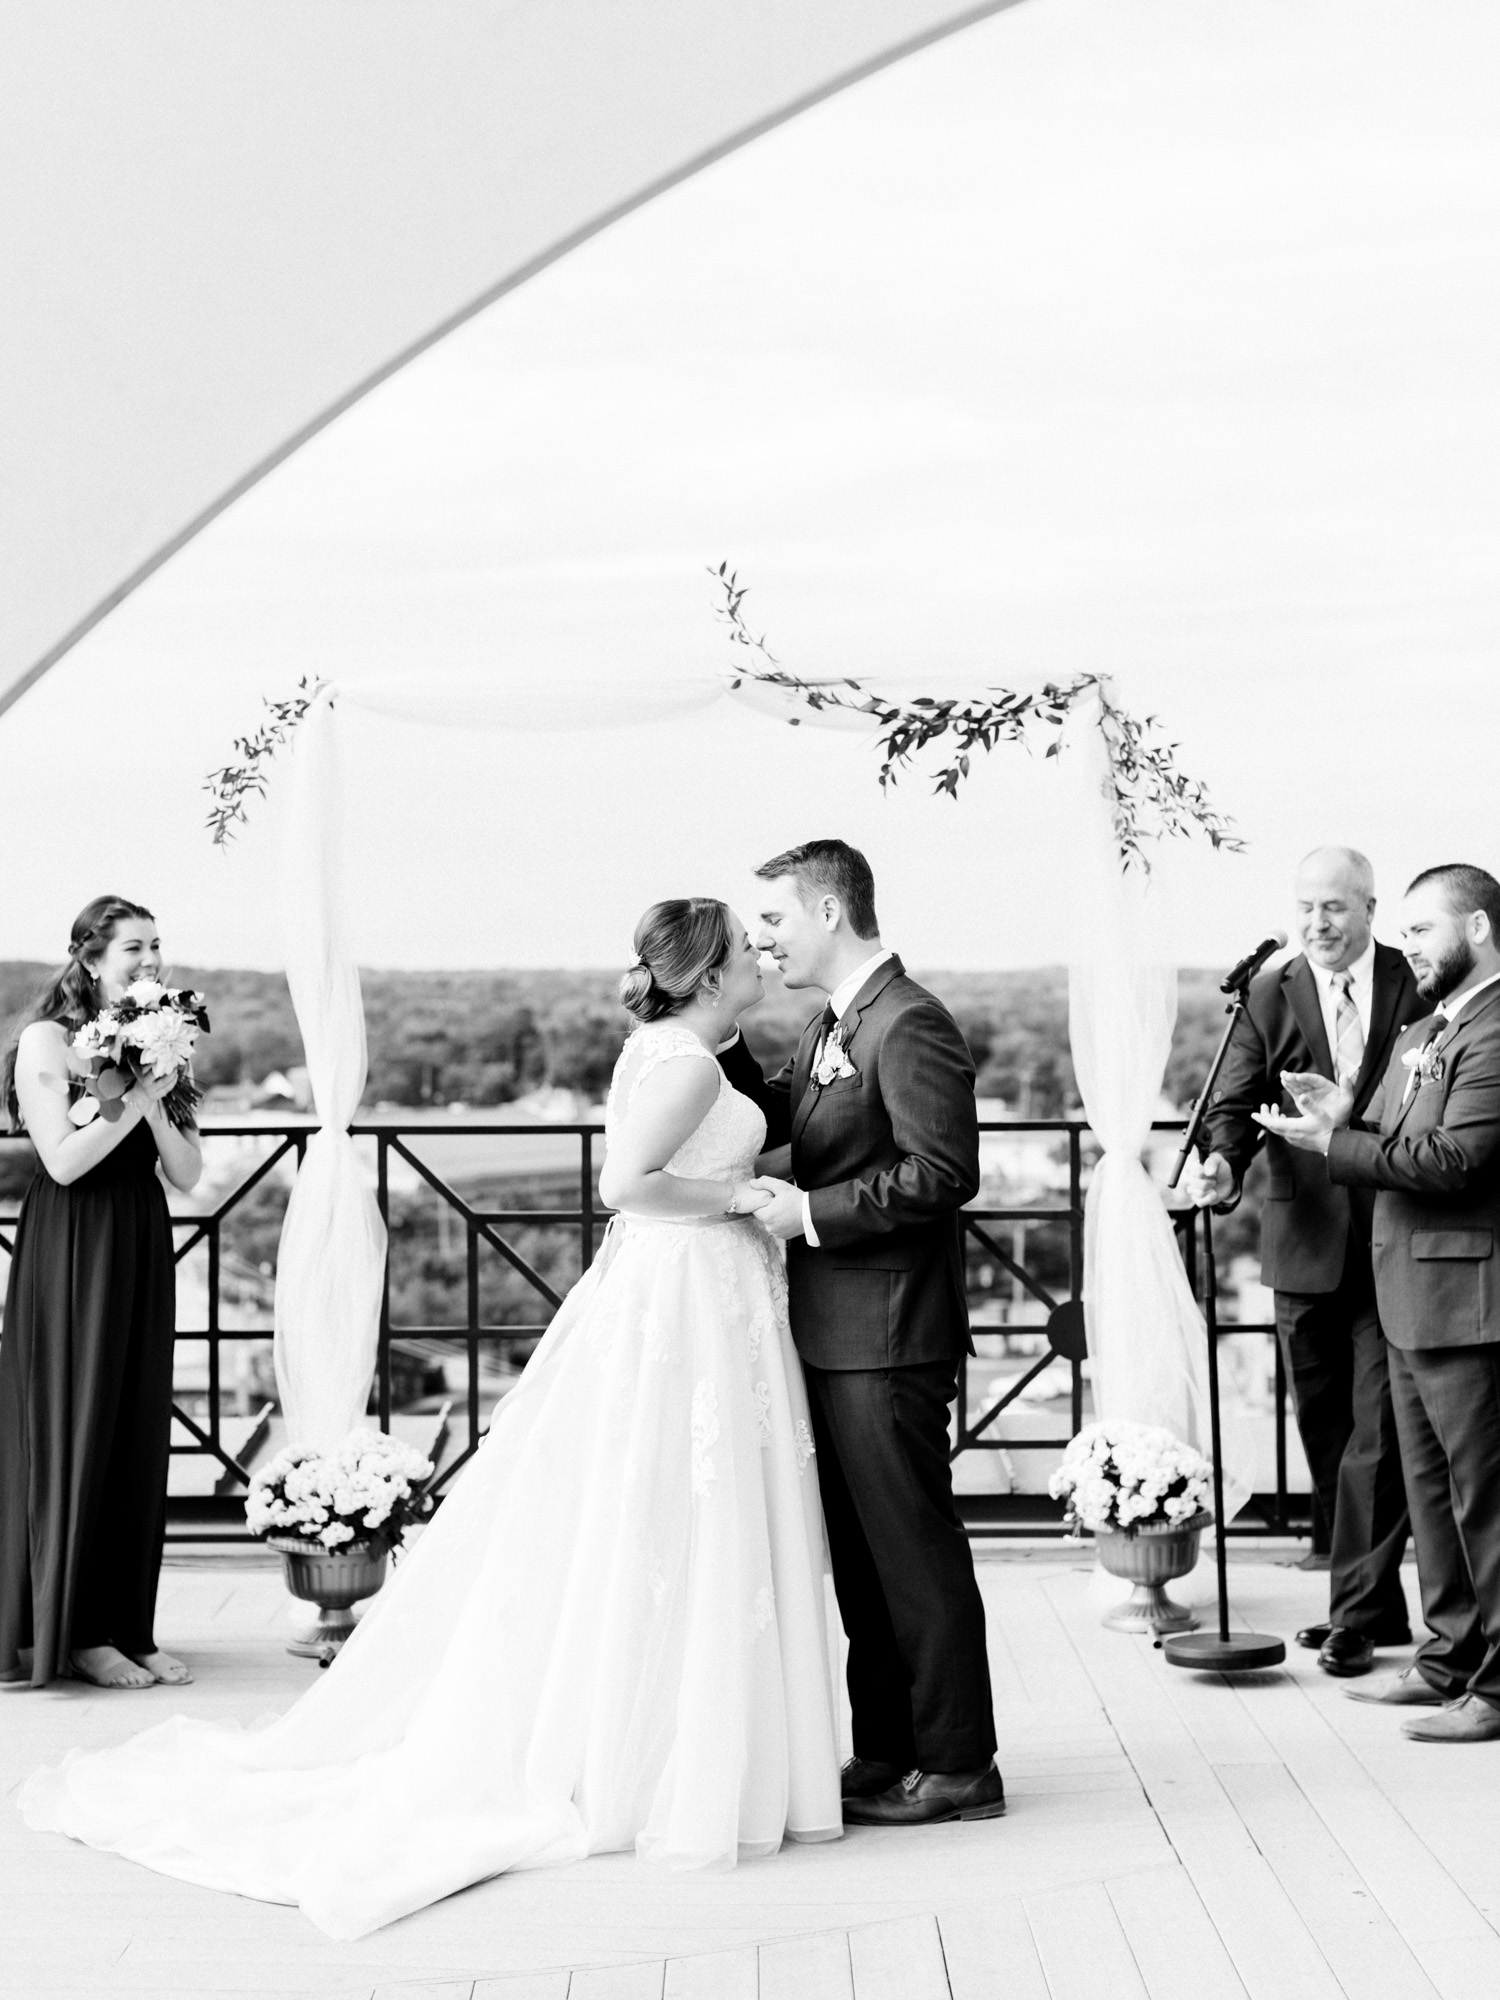 A wedding couple leans in for their first kiss during their rooftop ceremony at Loft 310 in Michigan